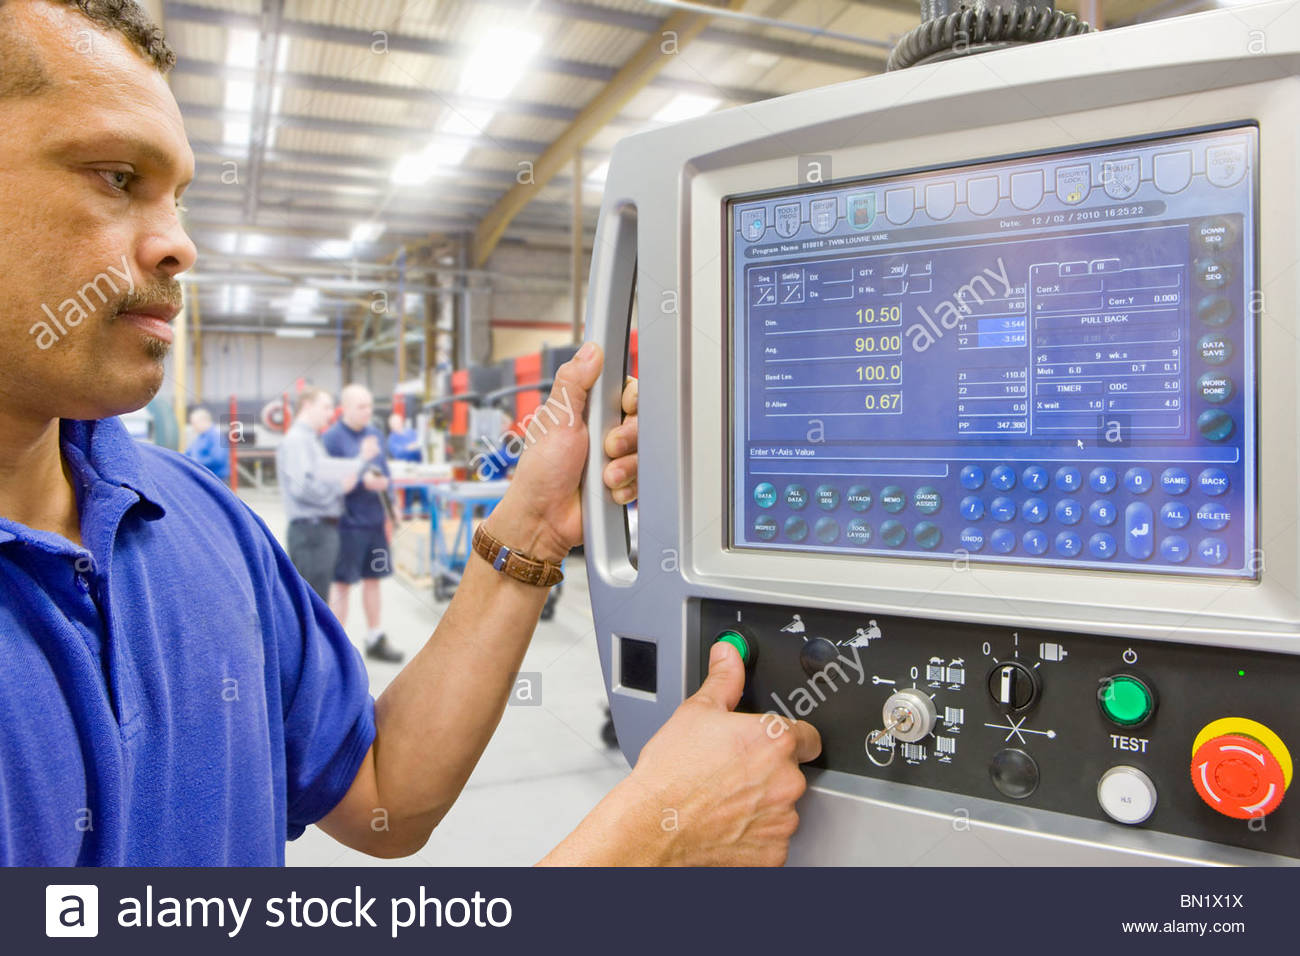 Worker operating computer controlled machinery in factory that manufactures aluminium light fittings - Stock Image